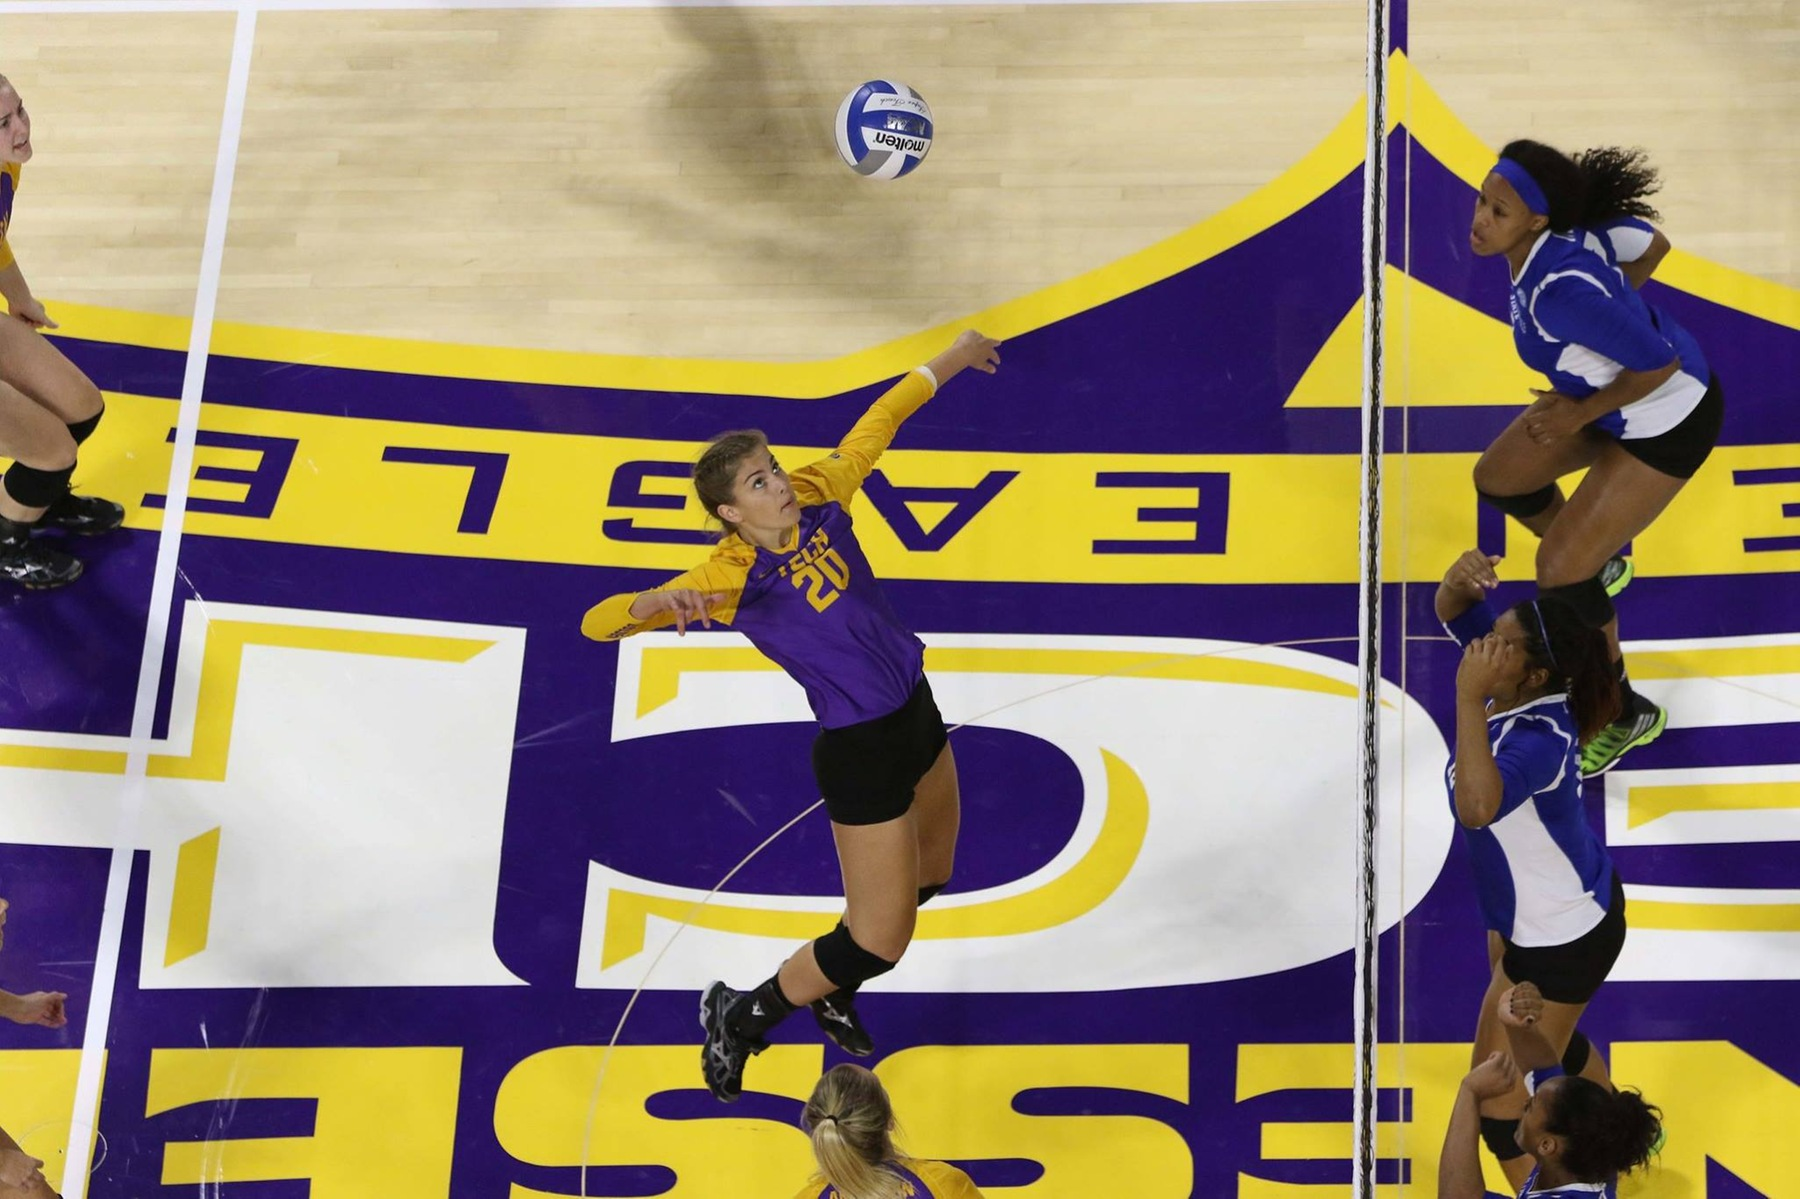 Tech volleyball falls to Harvard in Holiday Inn Invitational finale